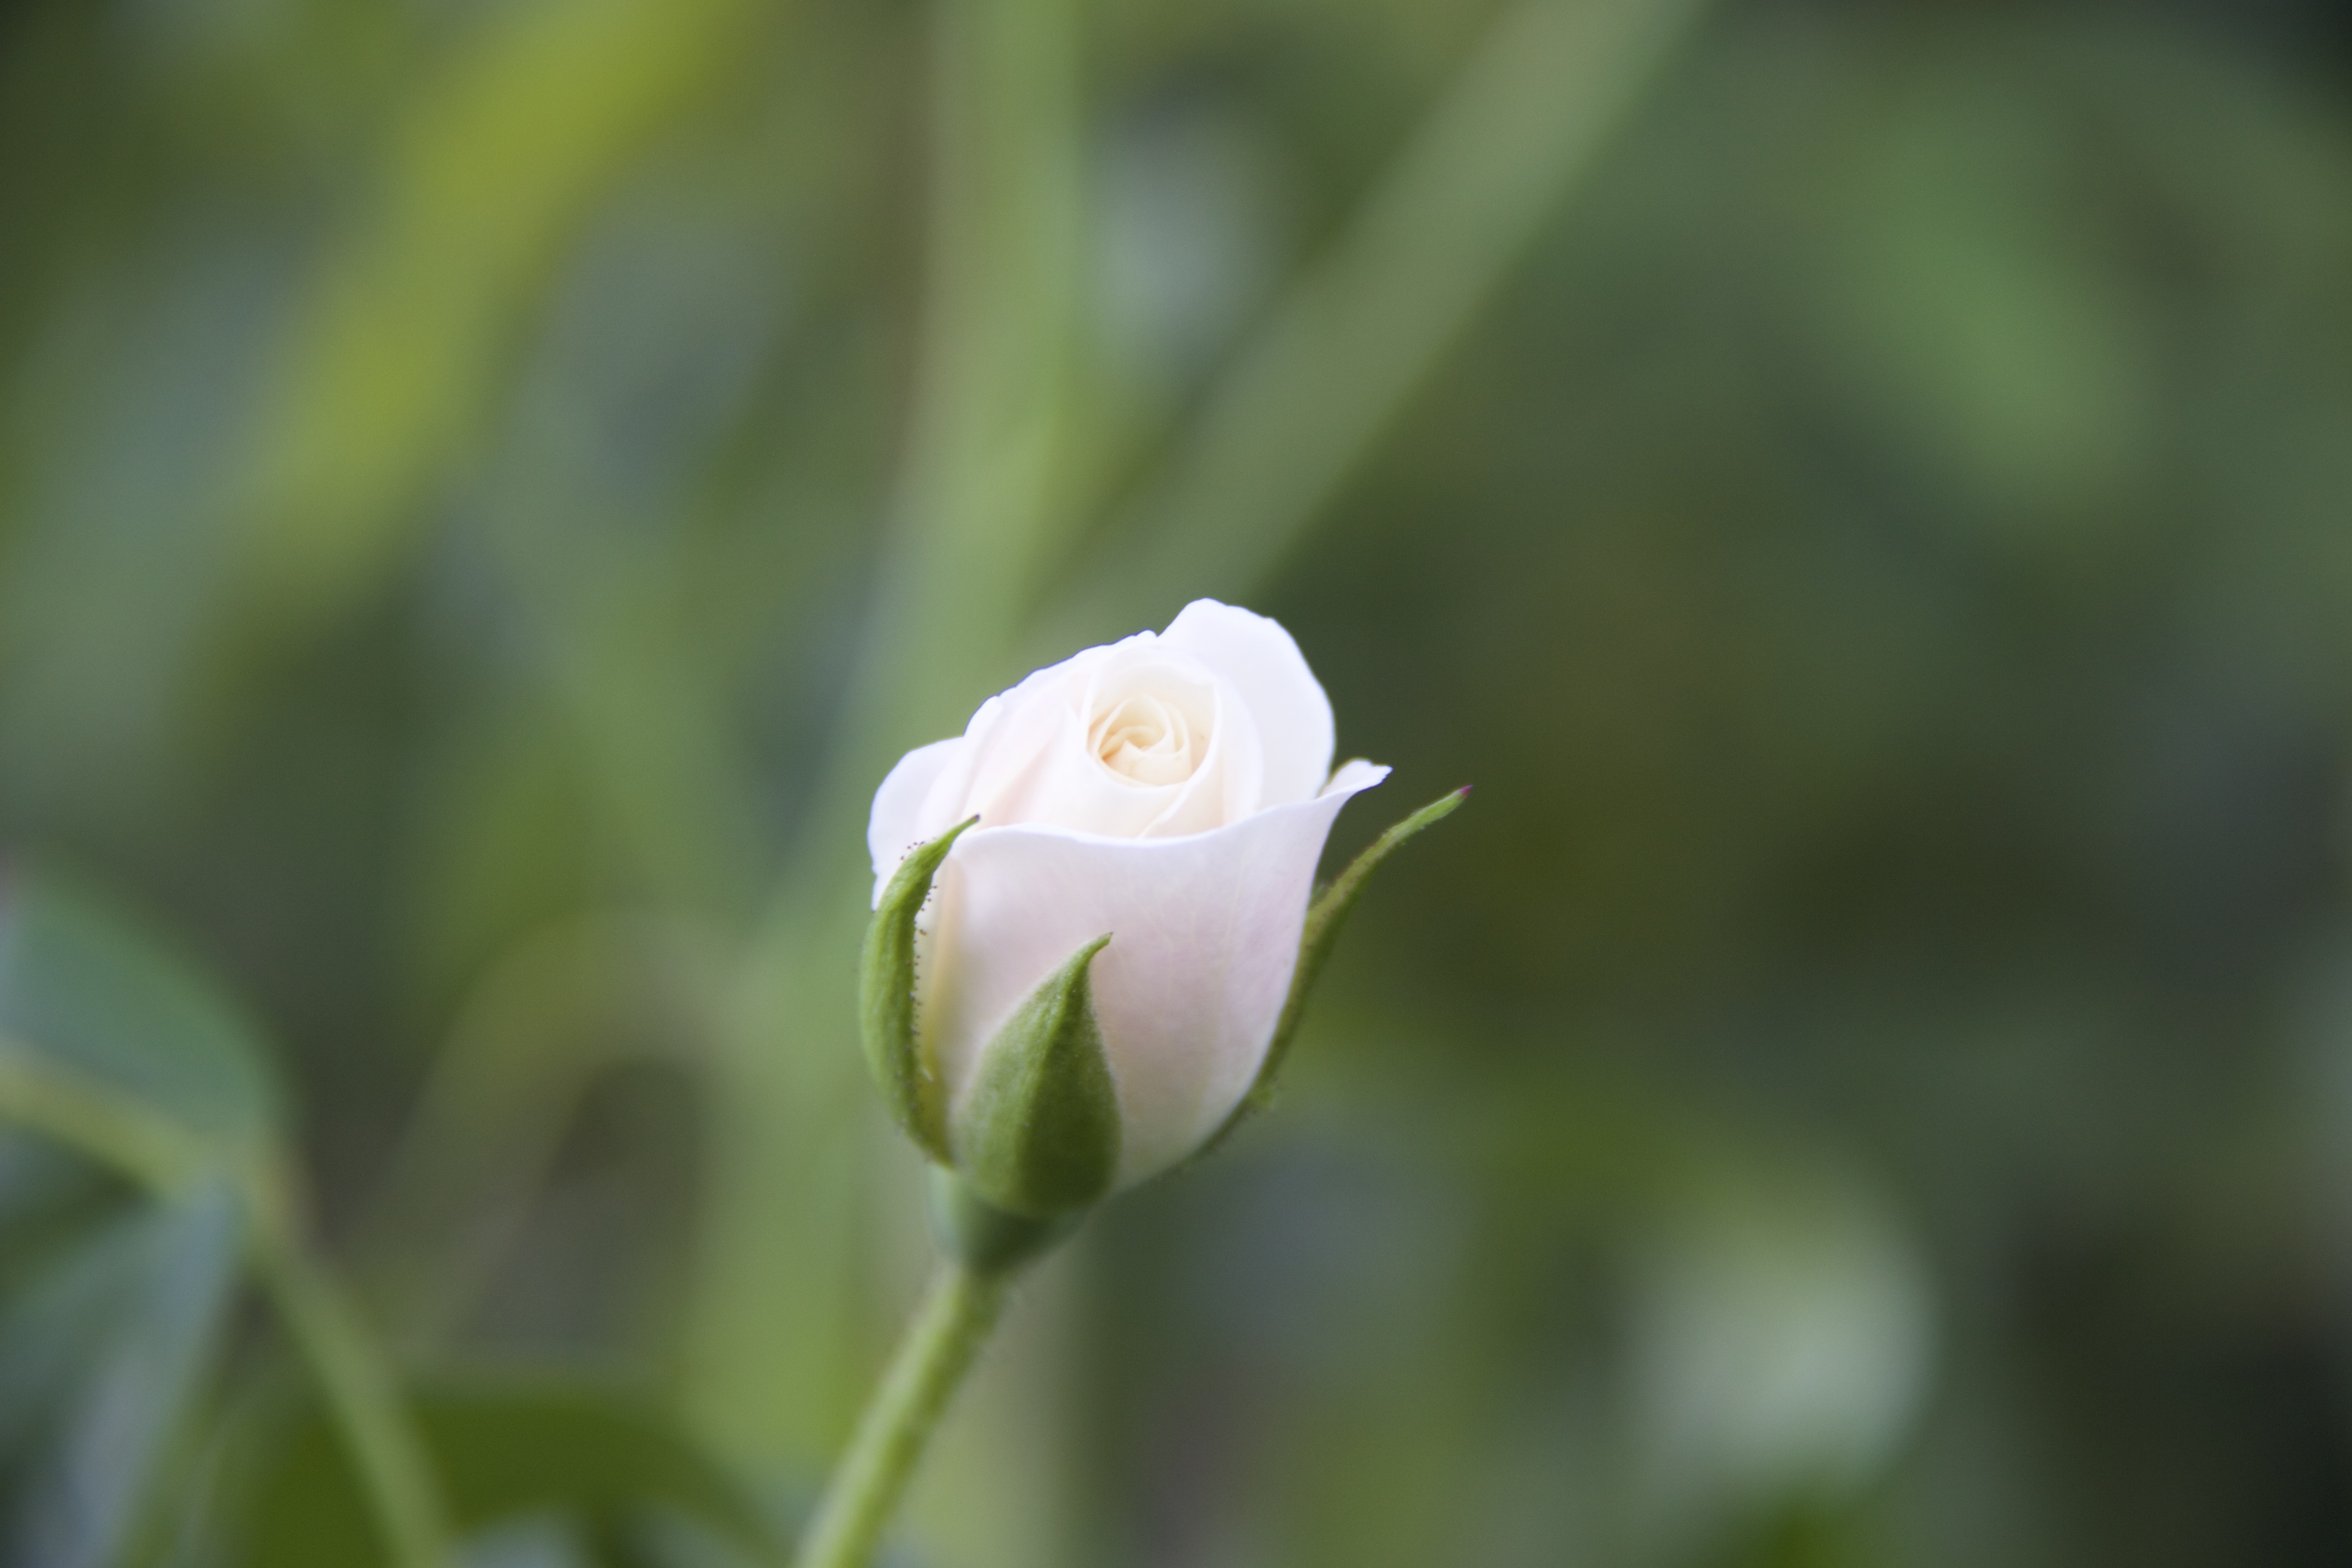 White rose bud bokeh background